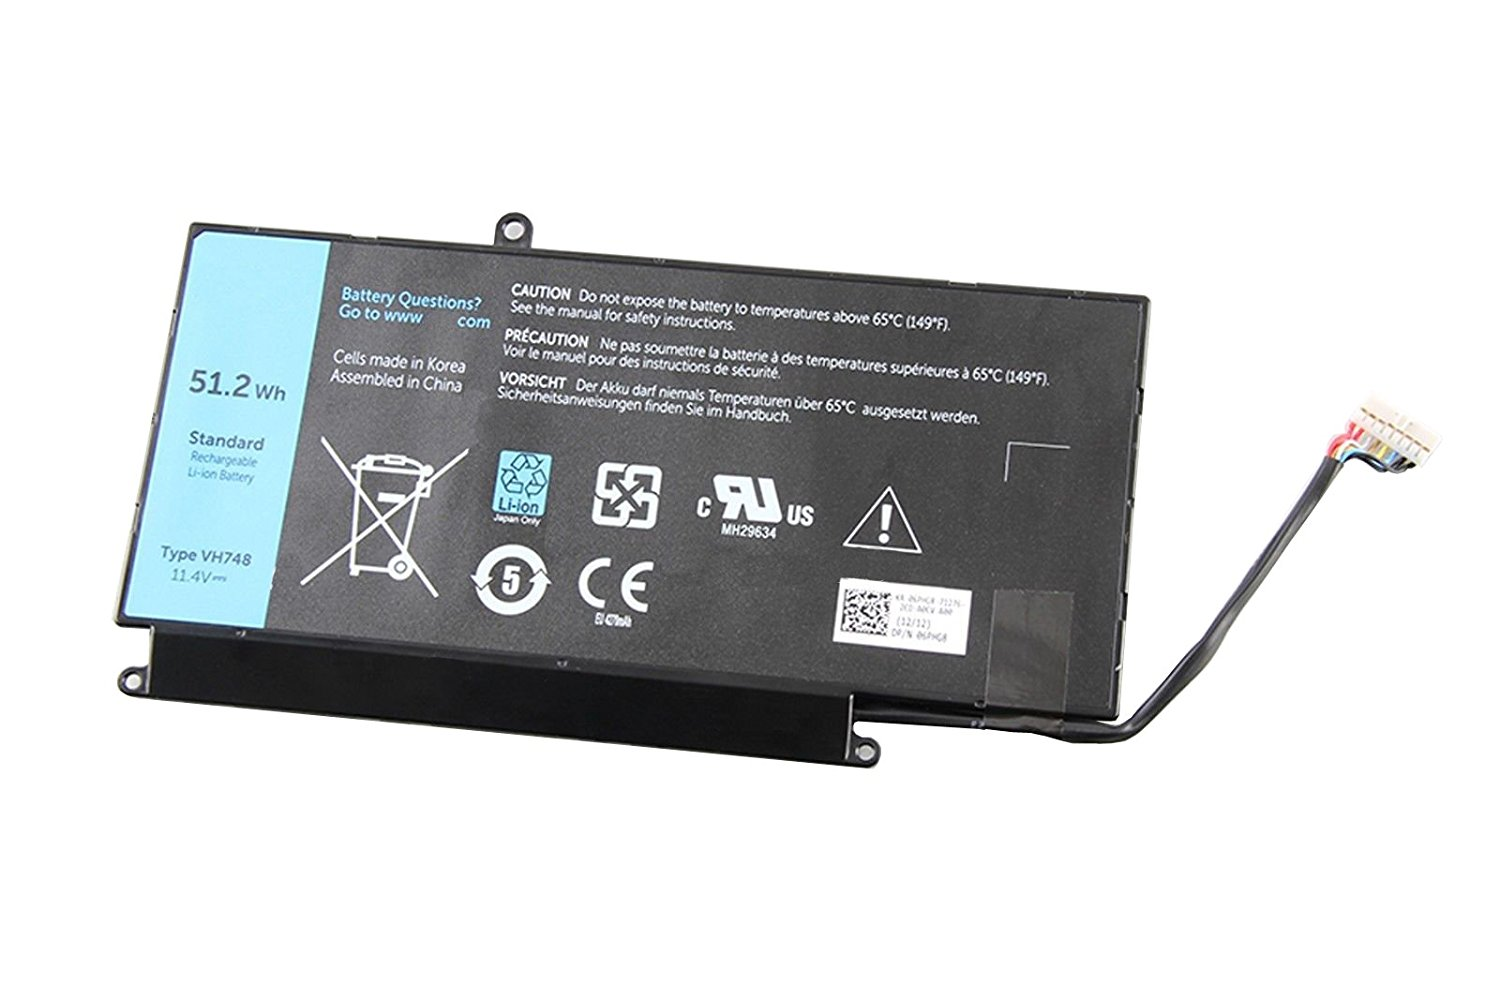 ZWXJ Laptop Battery VH748(8-cell 11.4V 51.2Wh) for Dell Inspiron 14 5439 Vostro 5460 5470 5560 Series V5460R-2526 5470D-1528 5560D-2328